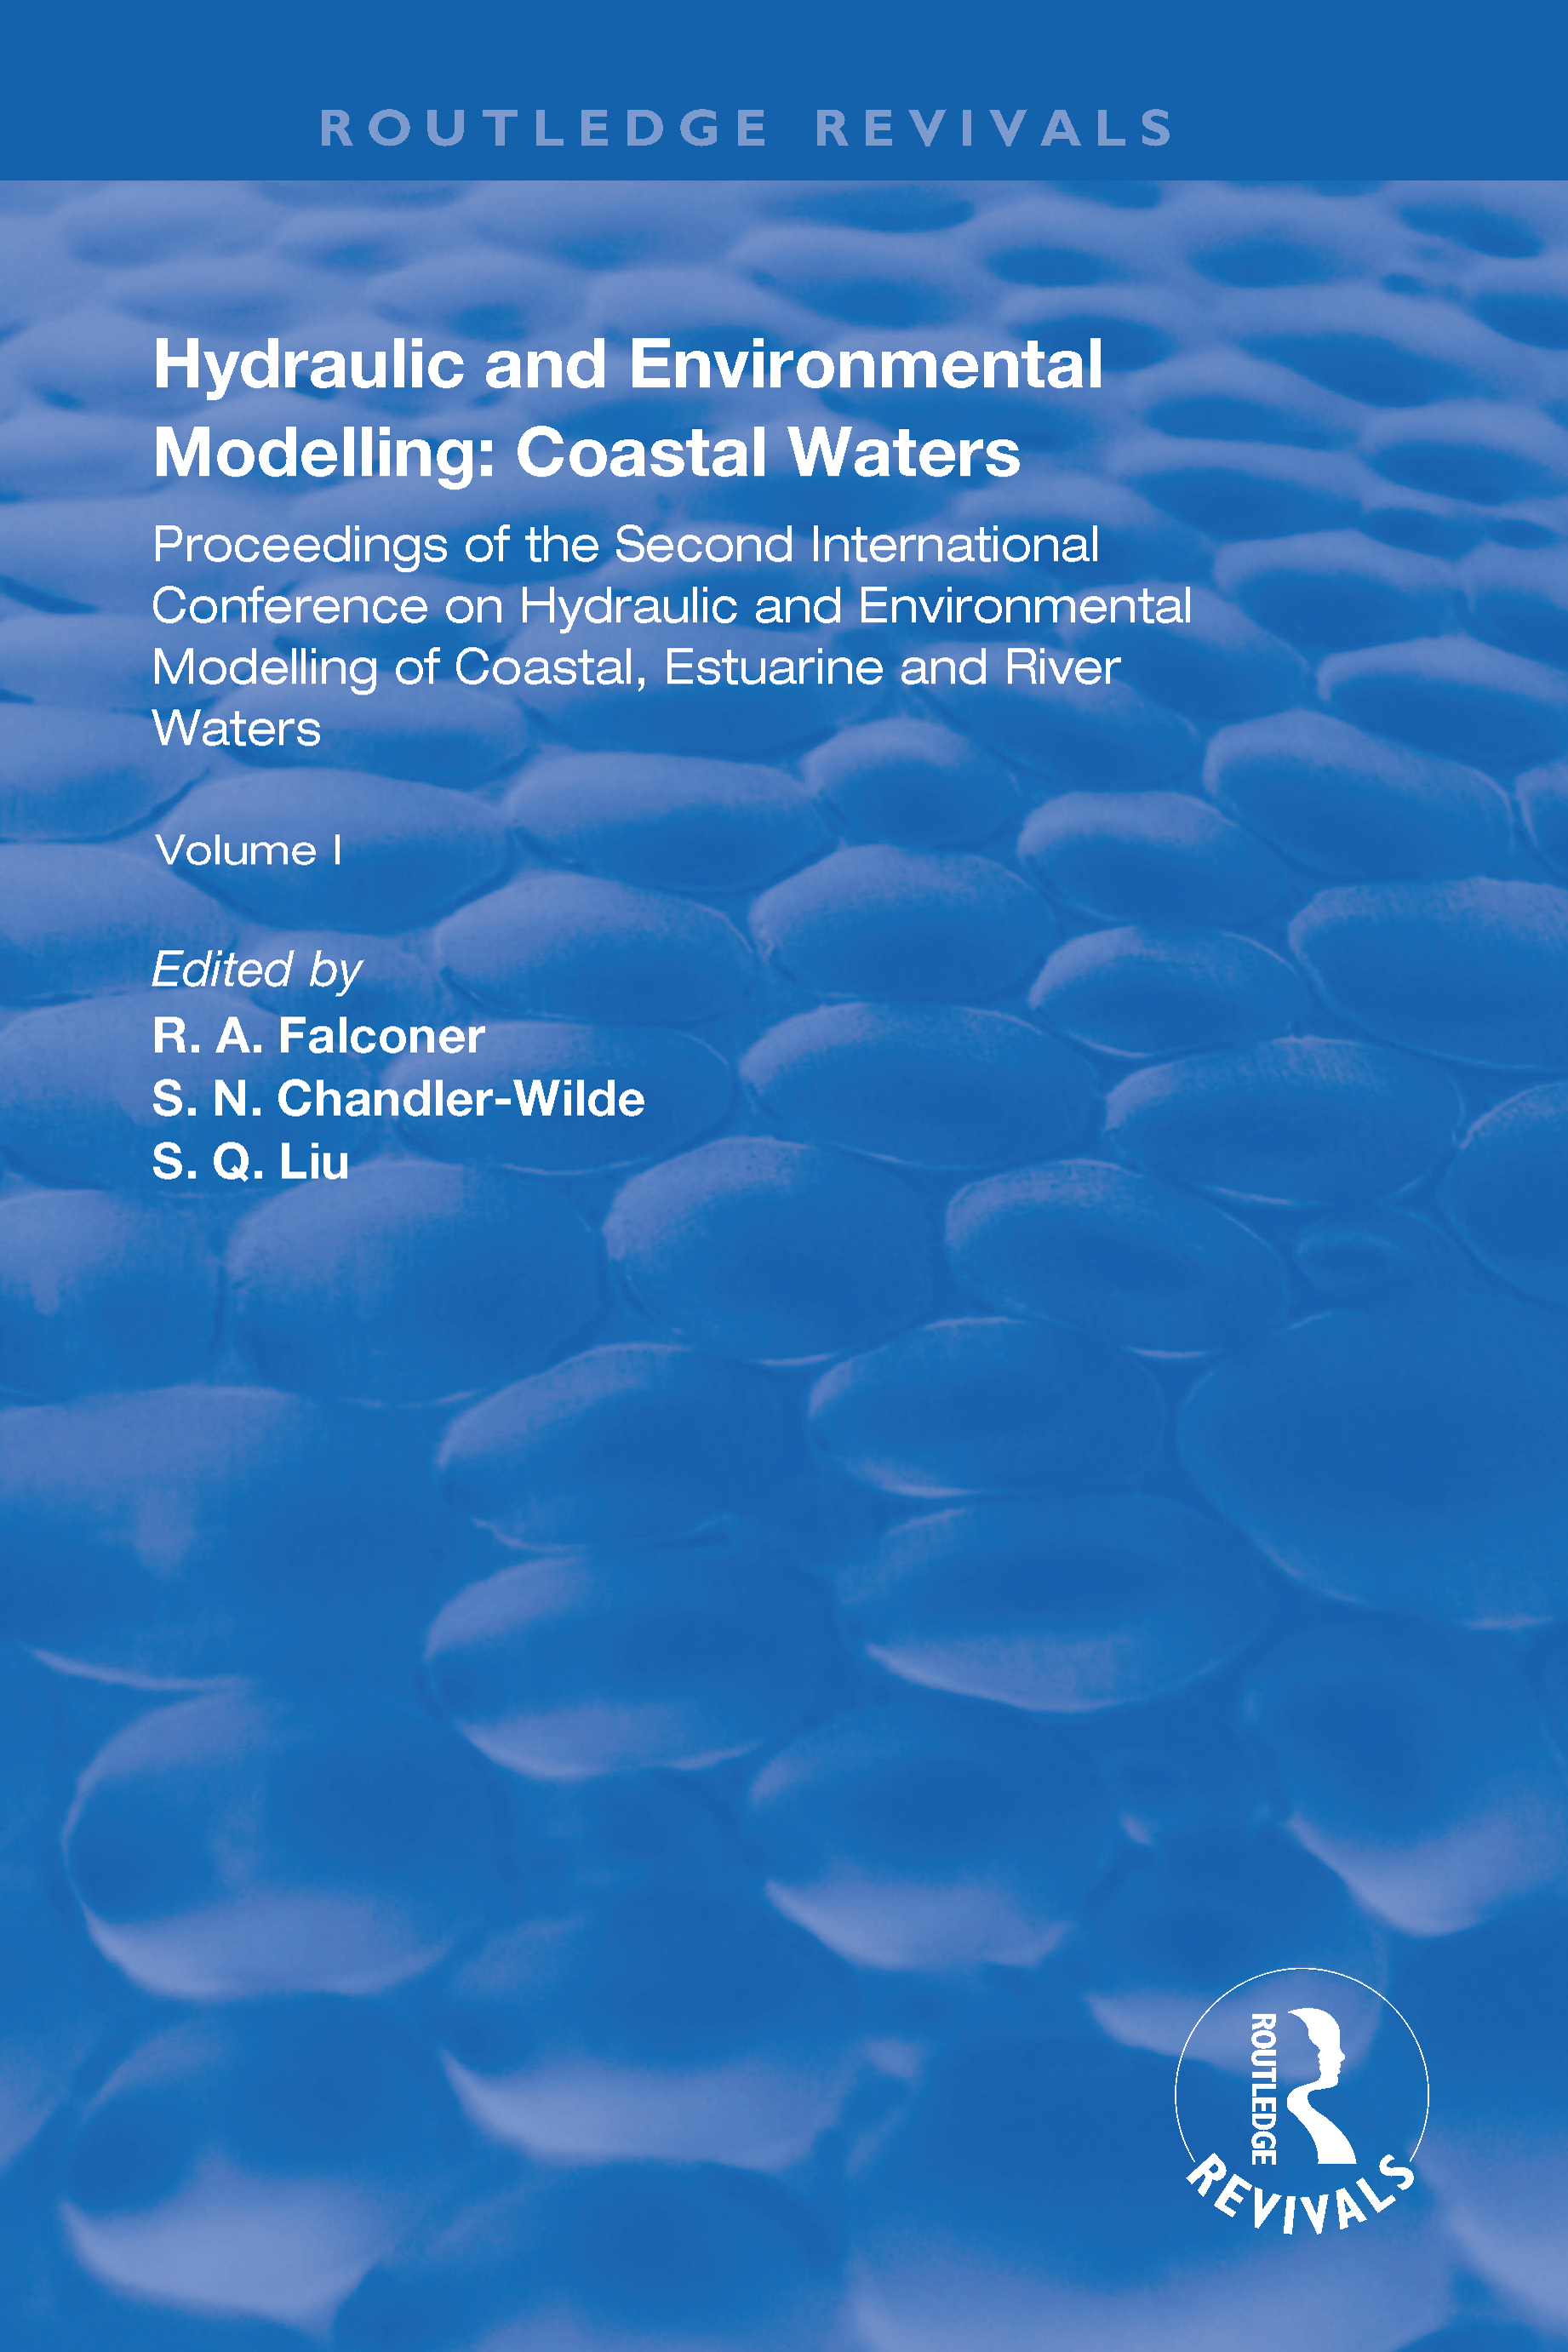 Hydraulic and Environmental Modelling: Proceedings of the Second International Conference on Hydraulic and Environmental Modelling of Coastal, Estuarine and River Waters. Vol. I. book cover